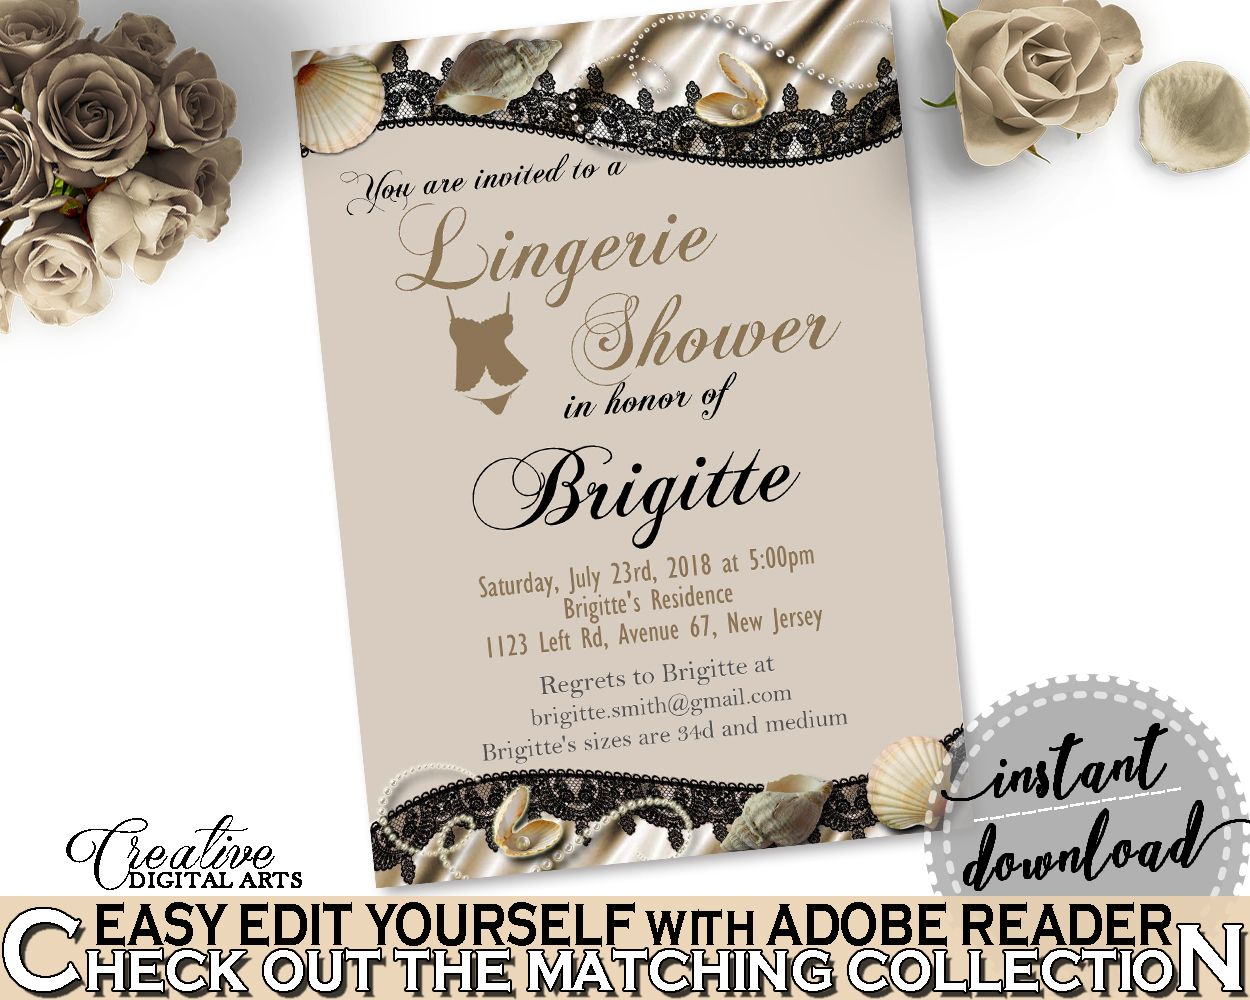 Gmail themes night - Brown And Beige Seashells And Pearls Bridal Shower Theme Lingerie Shower Invitation Editable Hens Night Party Plan Prints 65924